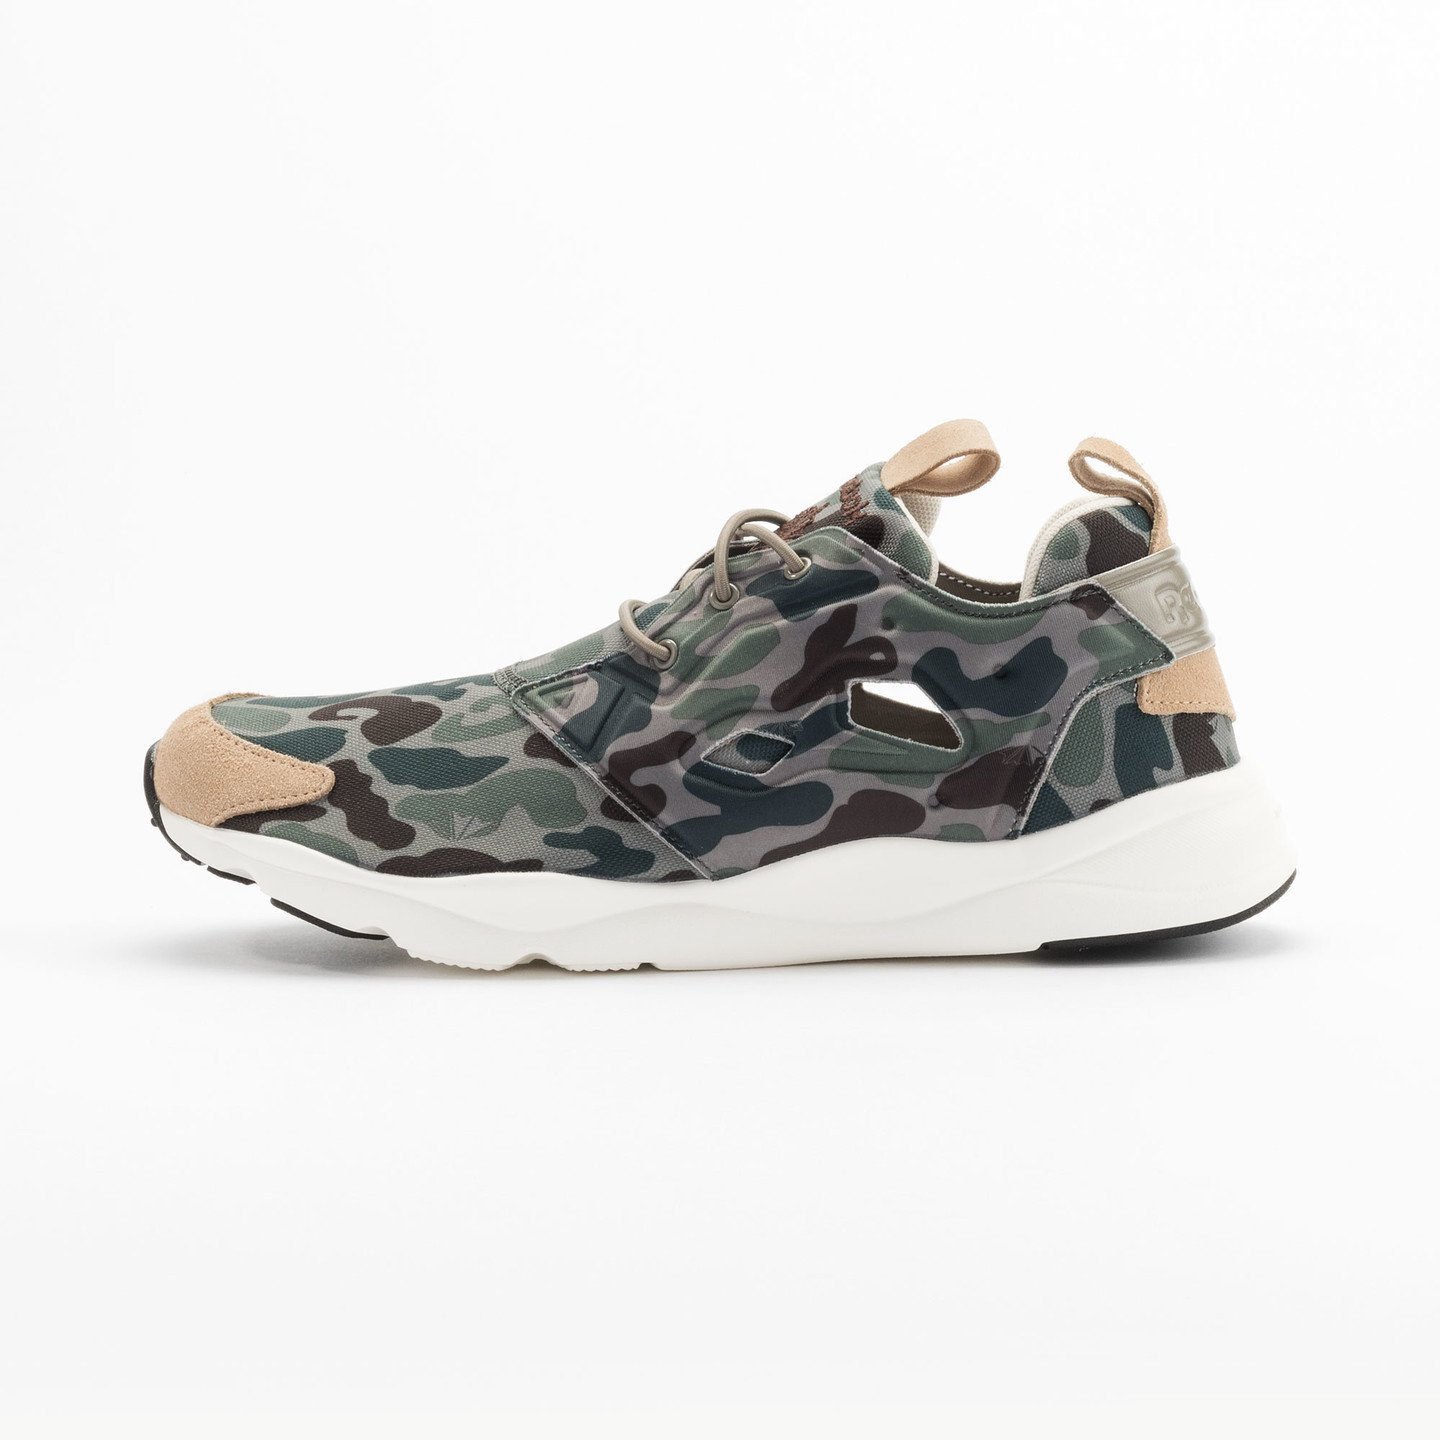 Reebok Furylite Camo Cement / Silvery Green / Sage V67089-42